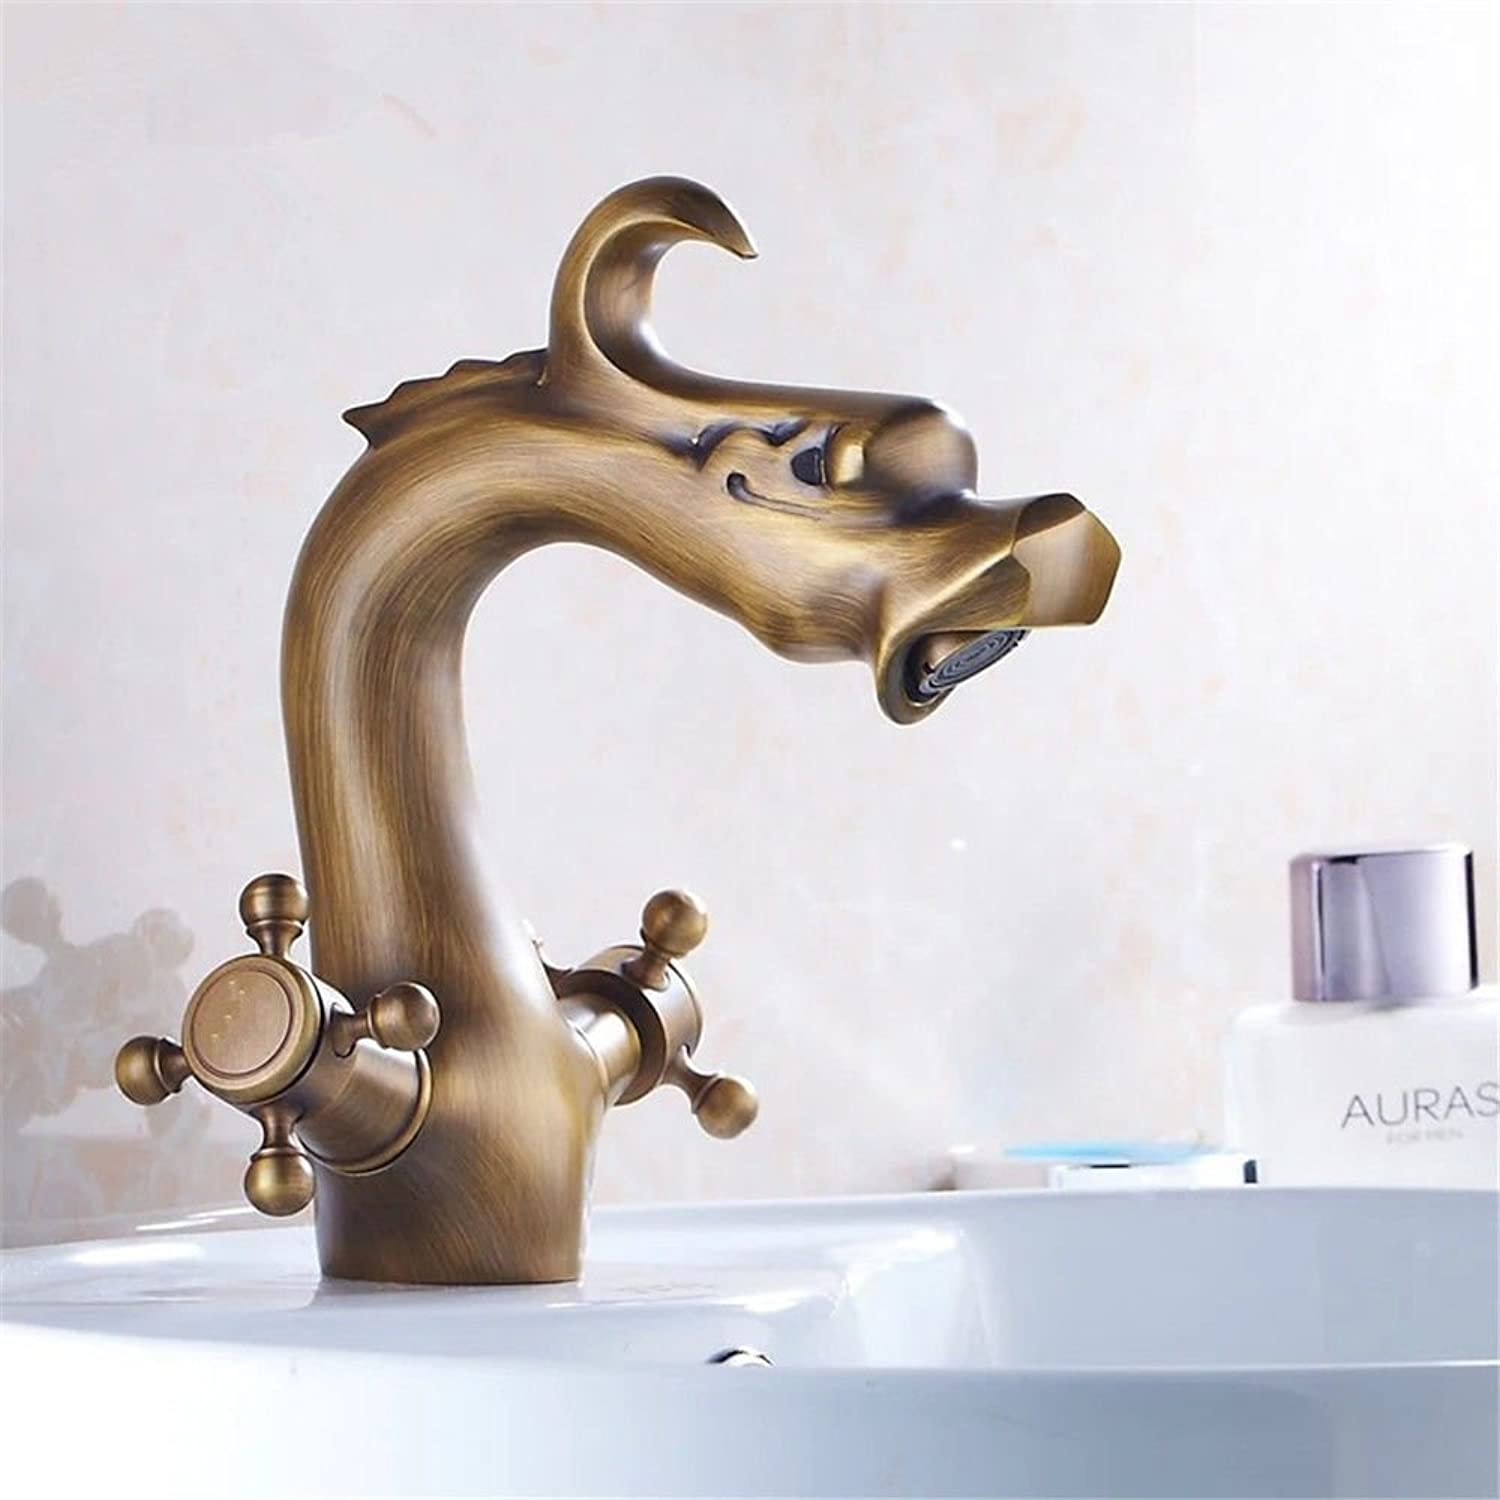 Lalaky Taps Faucet Kitchen Mixer Sink Waterfall Bathroom Mixer Basin Mixer Tap for Kitchen Bathroom and Washroom Antique Double Seated